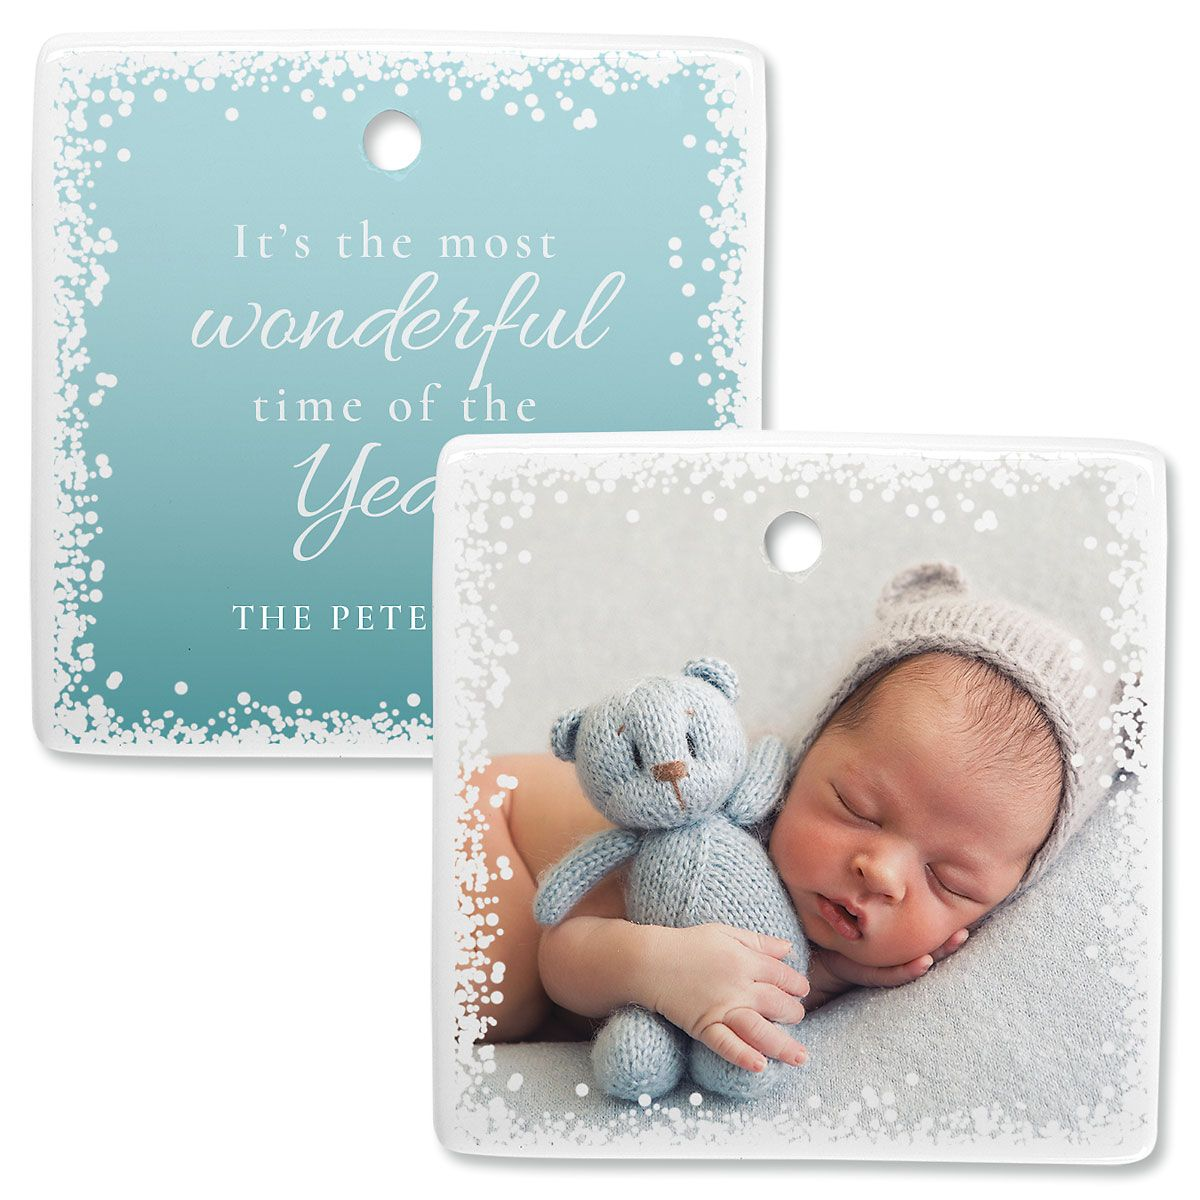 Confetti Snow Photo Ornament – Square 3